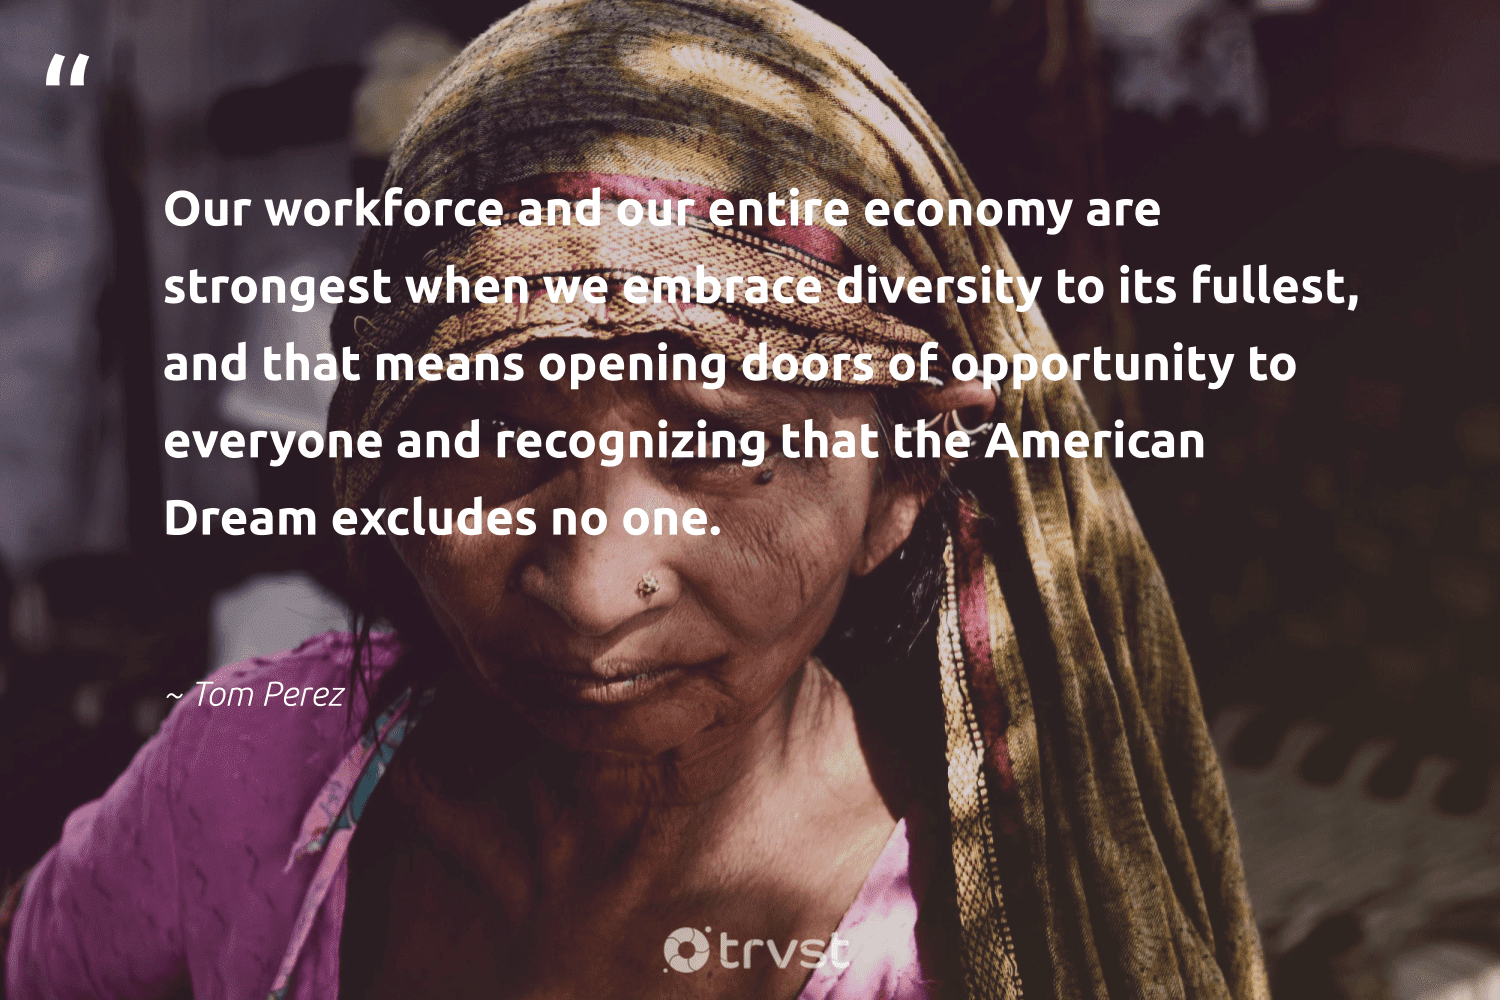 """""""Our workforce and our entire economy are strongest when we embrace diversity to its fullest, and that means opening doors of opportunity to everyone and recognizing that the American Dream excludes no one.""""  - Tom Perez #trvst #quotes #diversity #representationmatters #inclusion #giveback #weareallone #impact #discrimination #makeadifference #socialchange #planetearthfirst"""